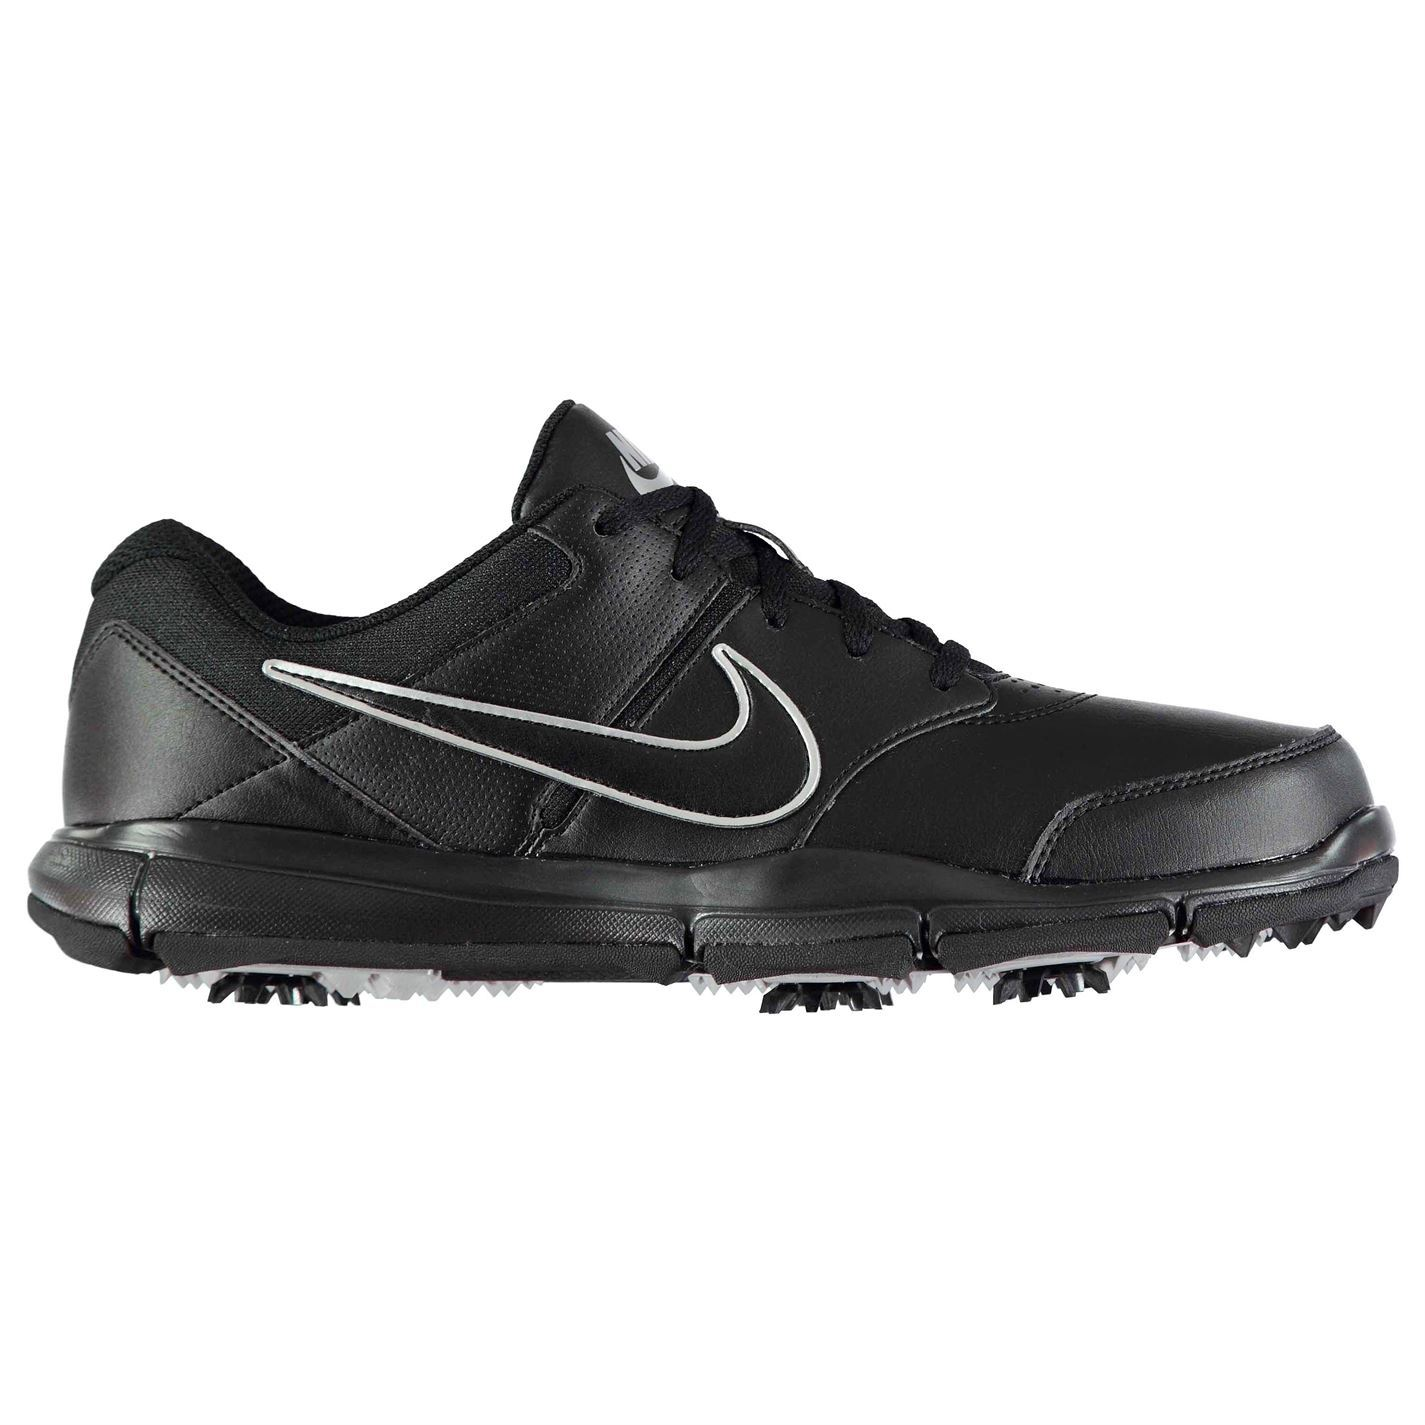 Nike-Durasport-4-Spiked-Golf-Shoes-Mens-Spikes-Footwear thumbnail 4